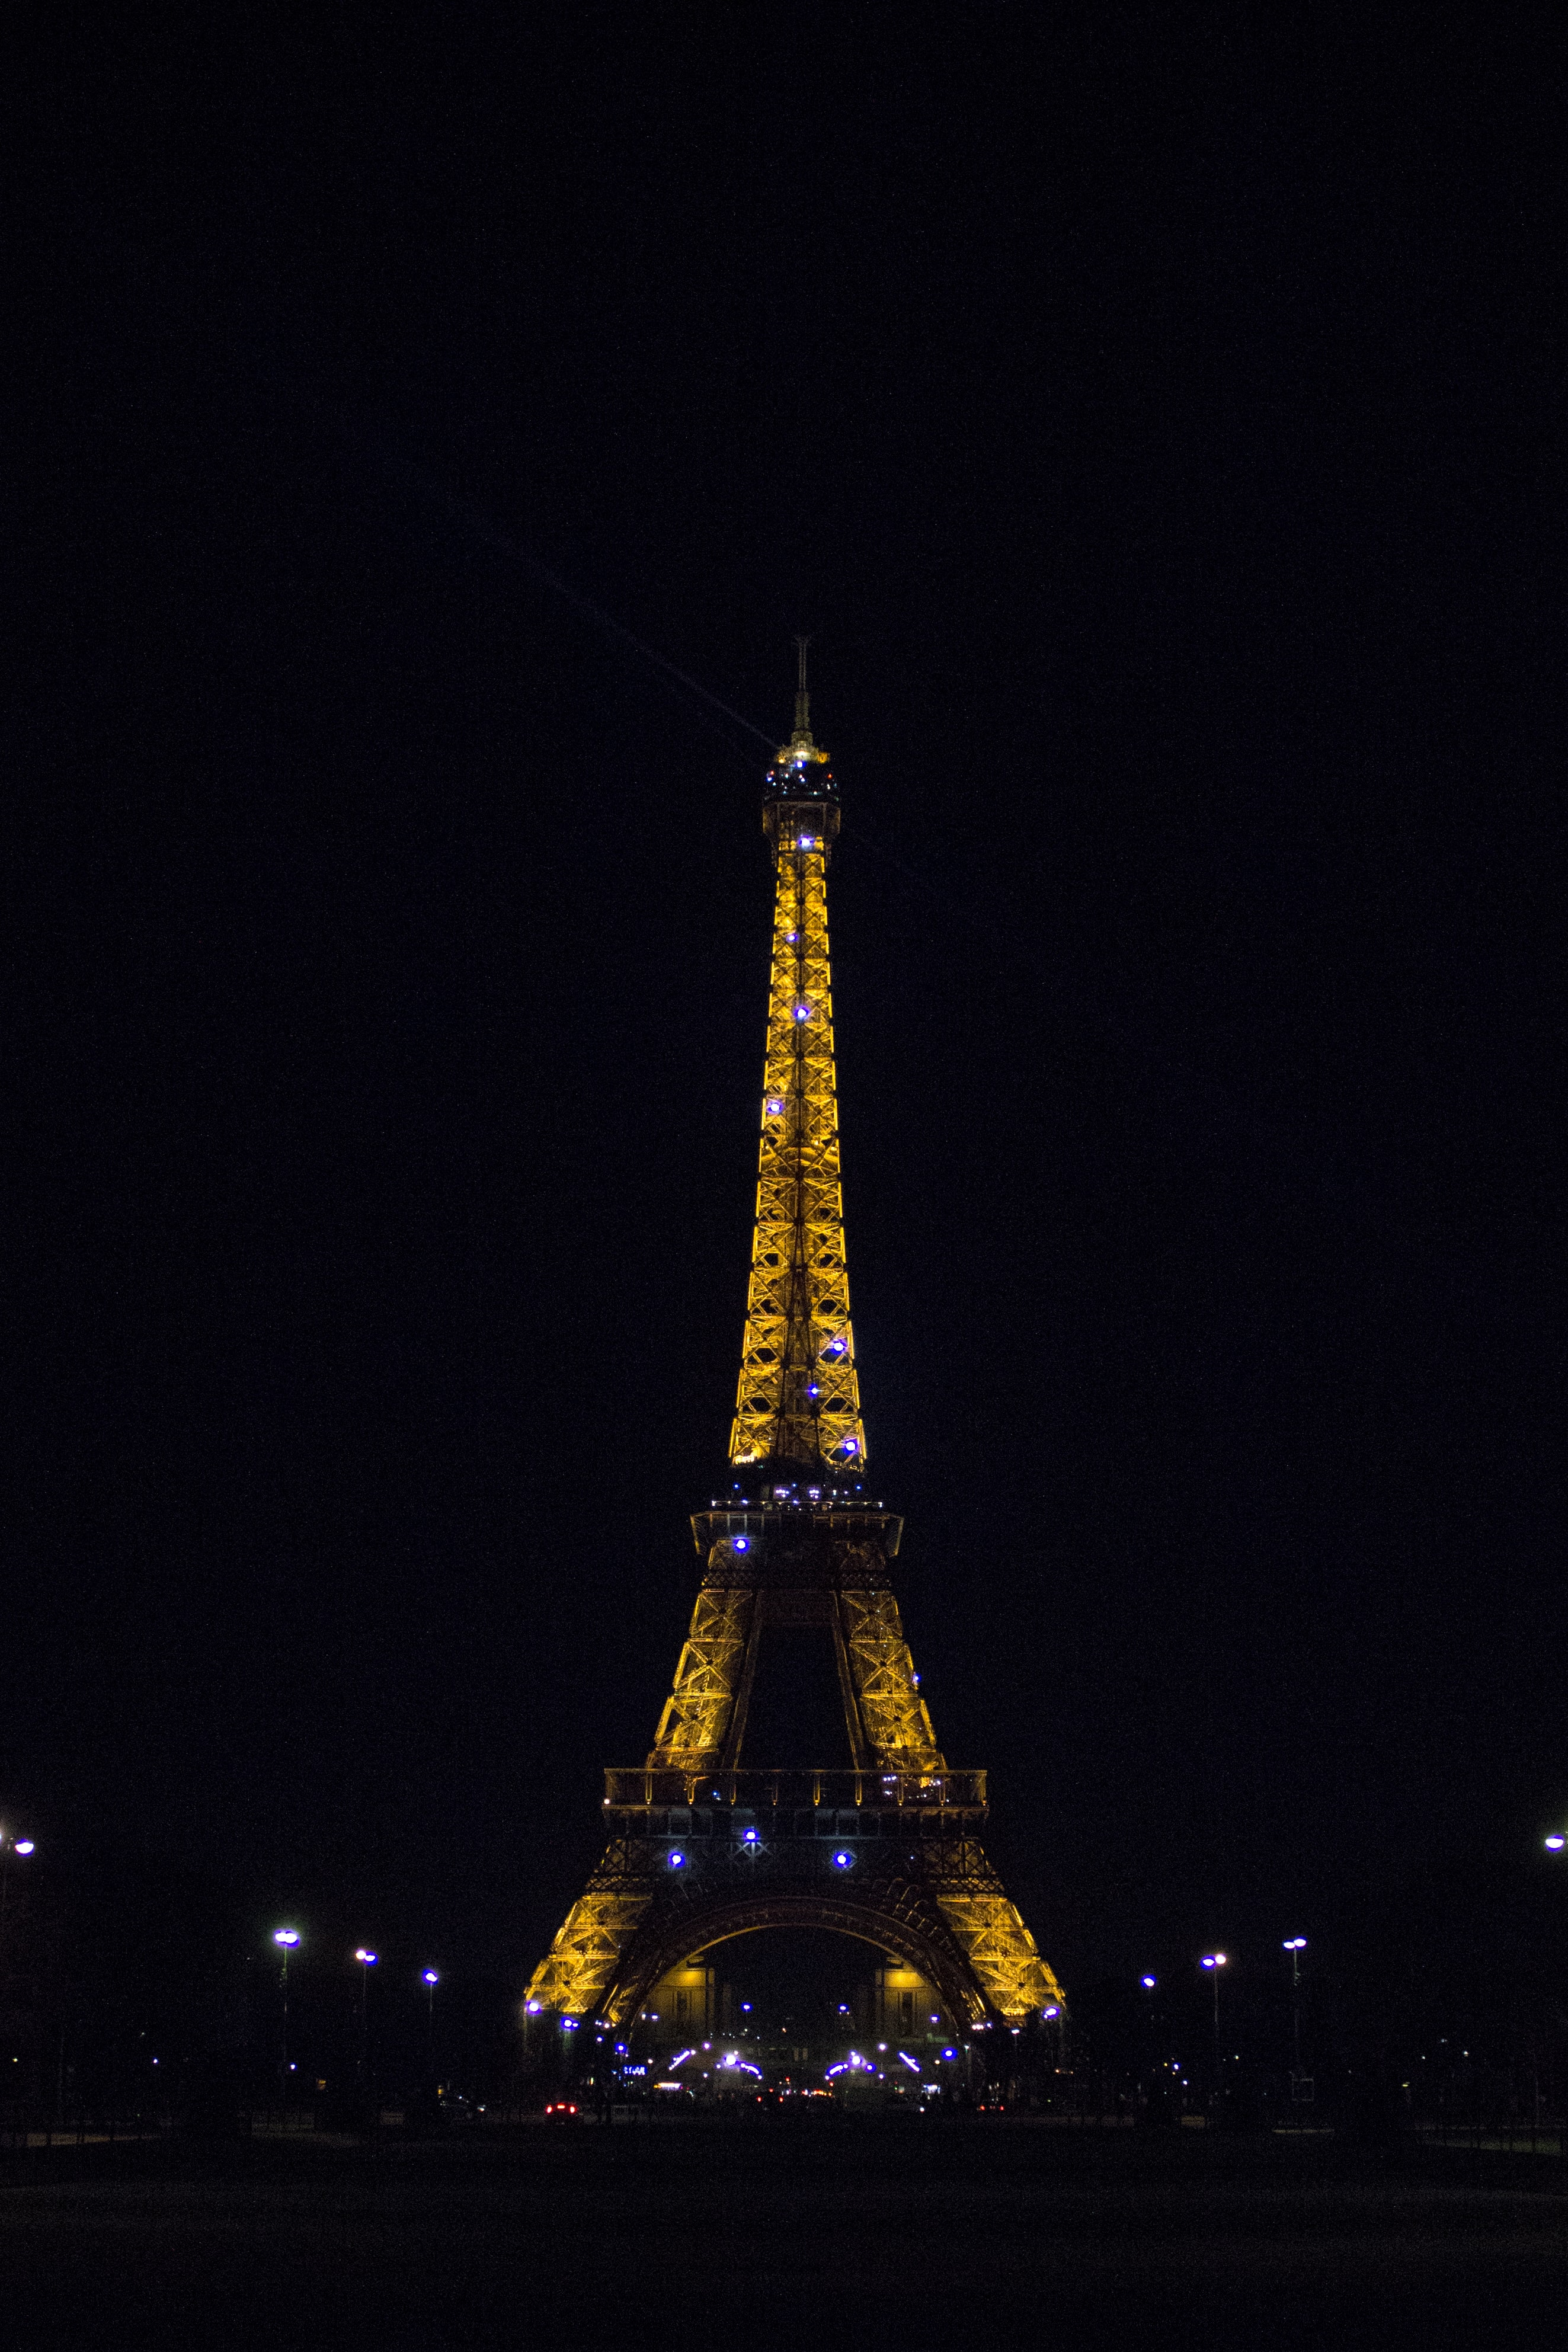 Eiffel Tower during nighttime